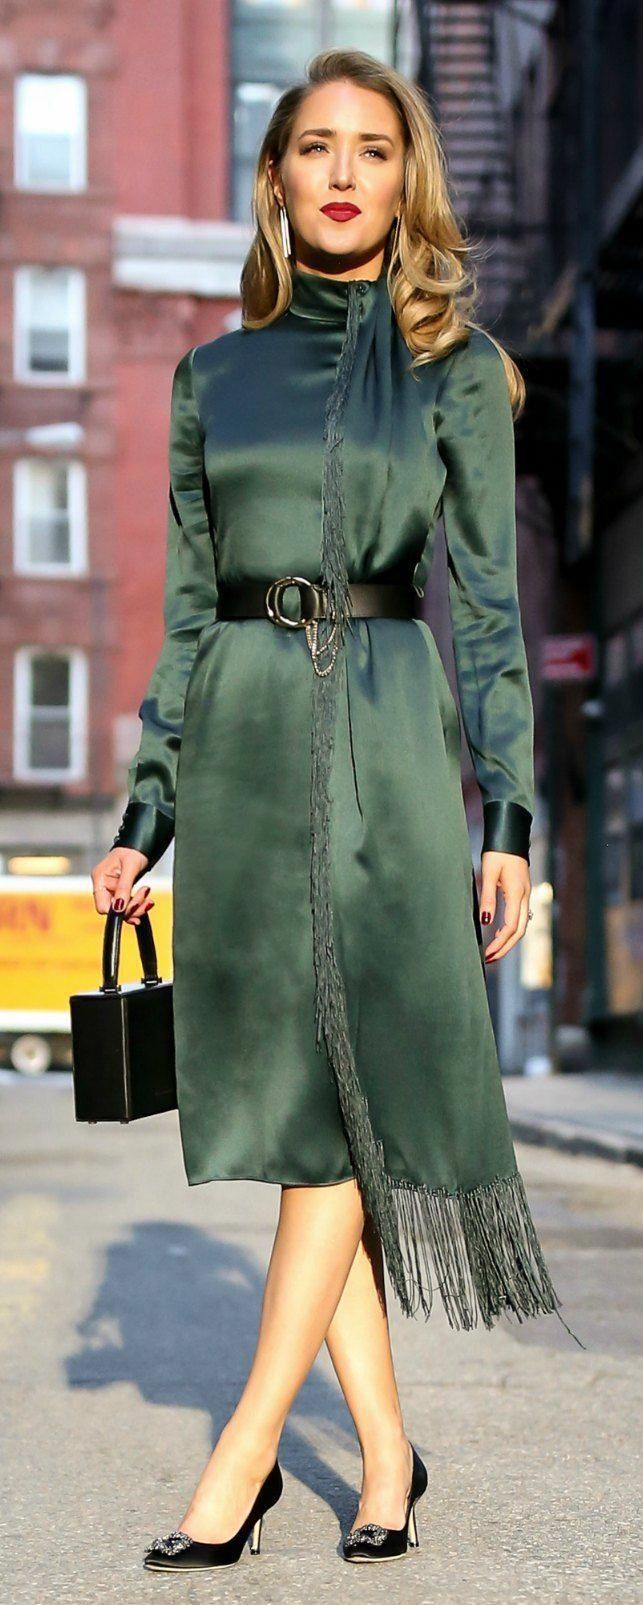 a13b62db937 The One Accessory I Cannot Live Without    Emerald Green long sleeve midi  dress with fringe detail